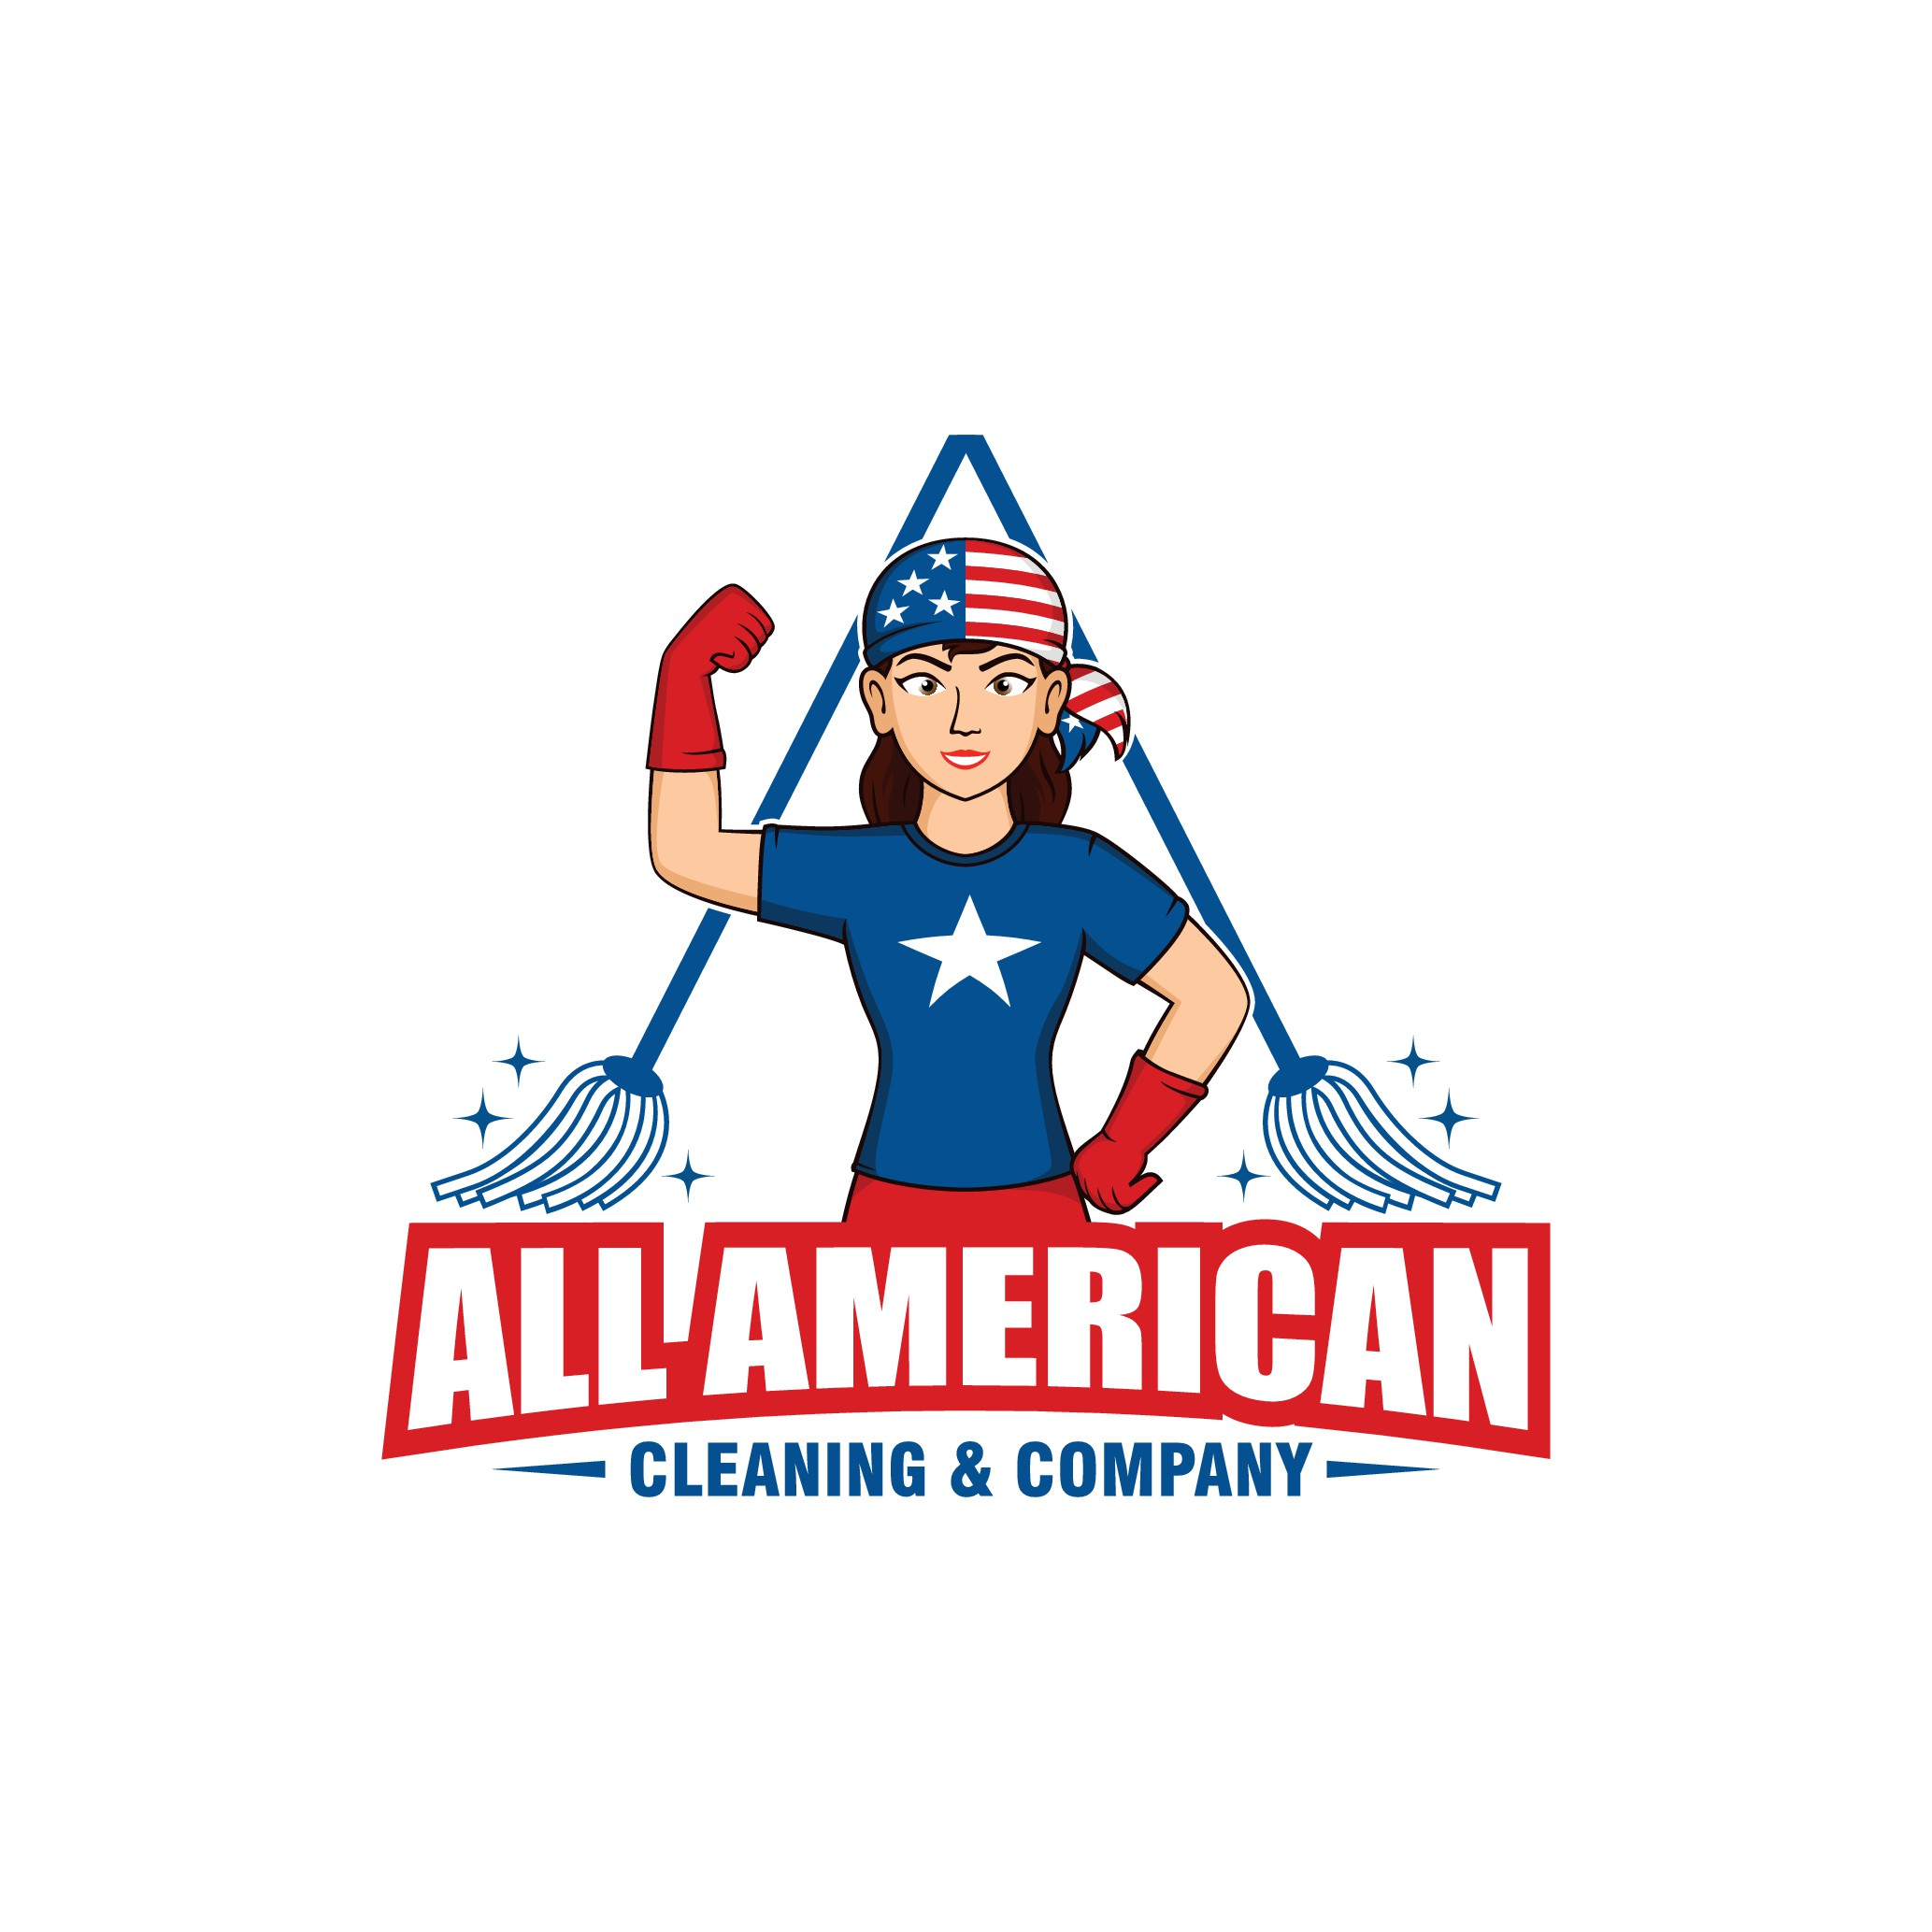 New & improved logo needed for our company relaunch! All American Cleaning & Company.